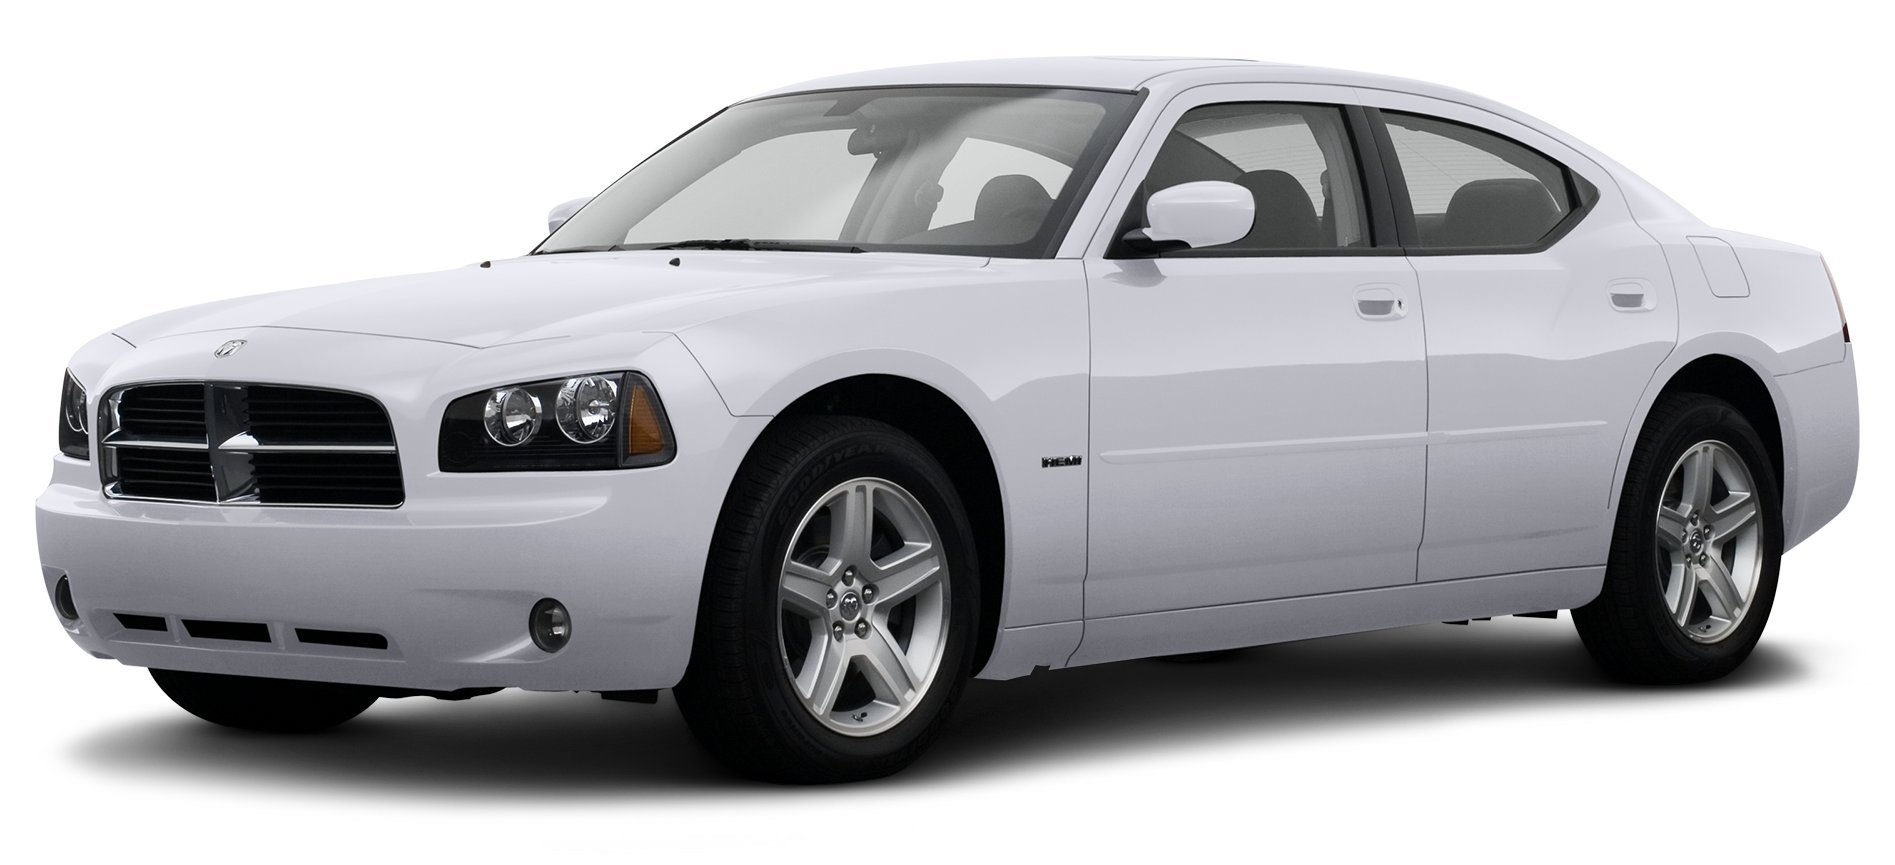 Picture of 2007 infiniti m35 4 dr awd exterior -  2008 Dodge Charger R T 4 Door Sedan Rear Wheel Drive